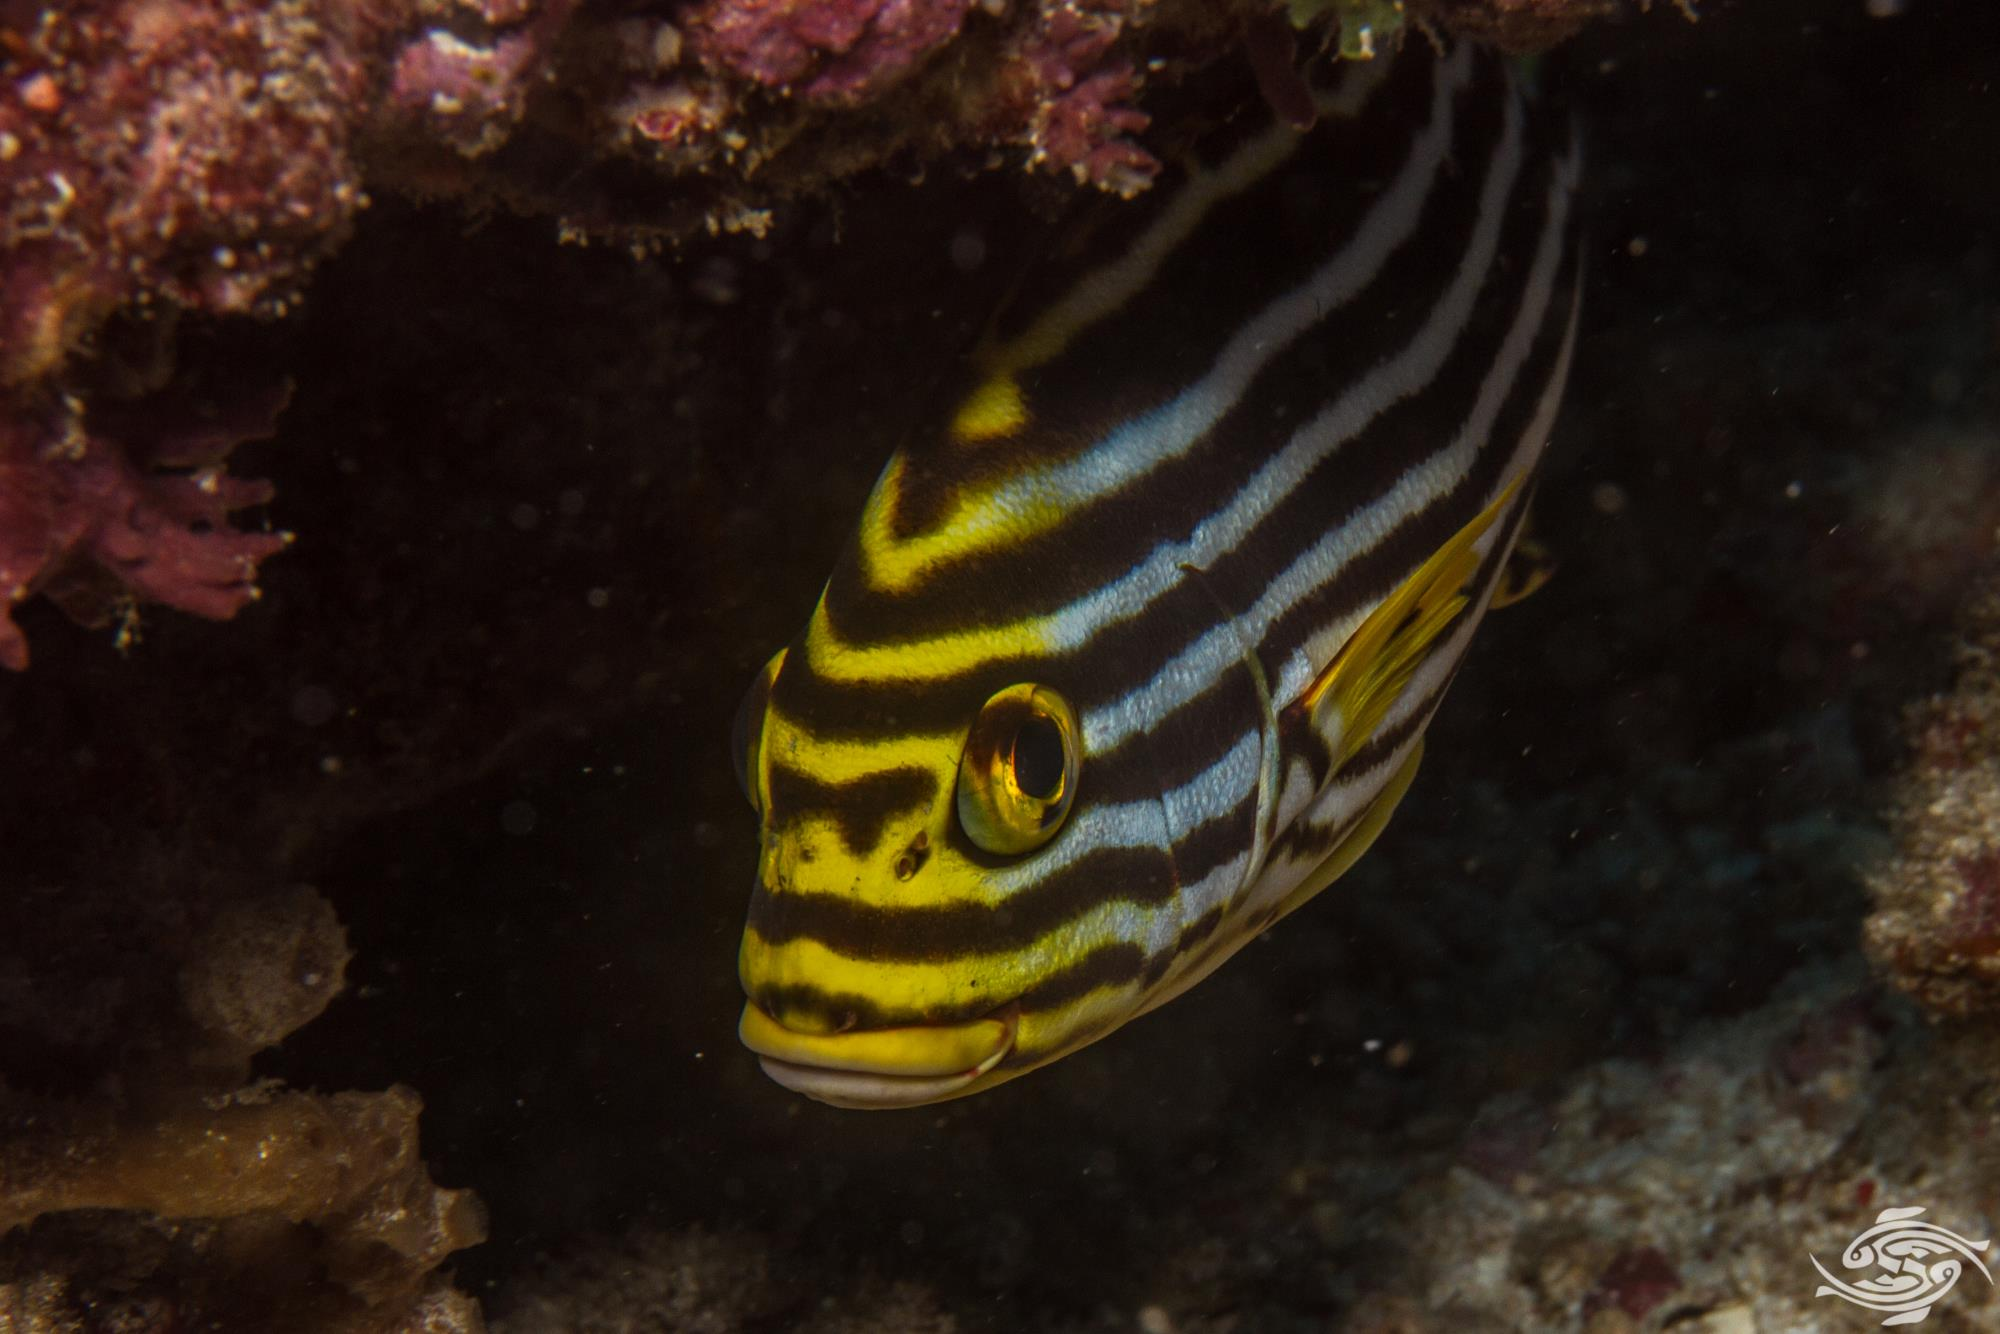 oriental sweetlips Plectorhinchus vittatus, also known as the Indian Ocean oriental sweetlips